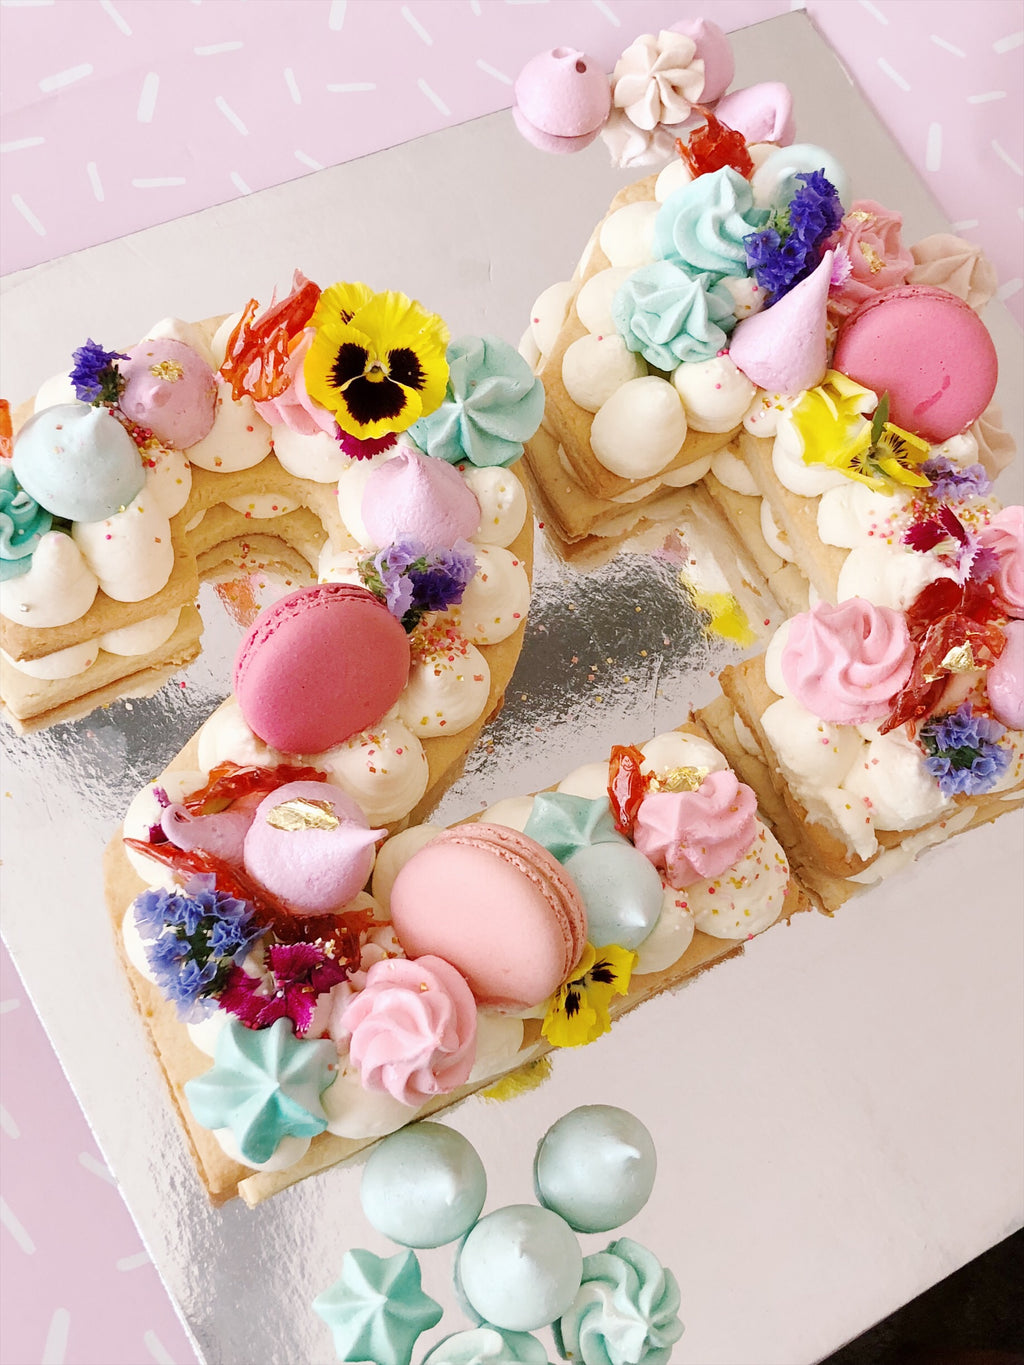 Cookie cake with Meringue Kisses and Macarons - Sugar Rush by Steph